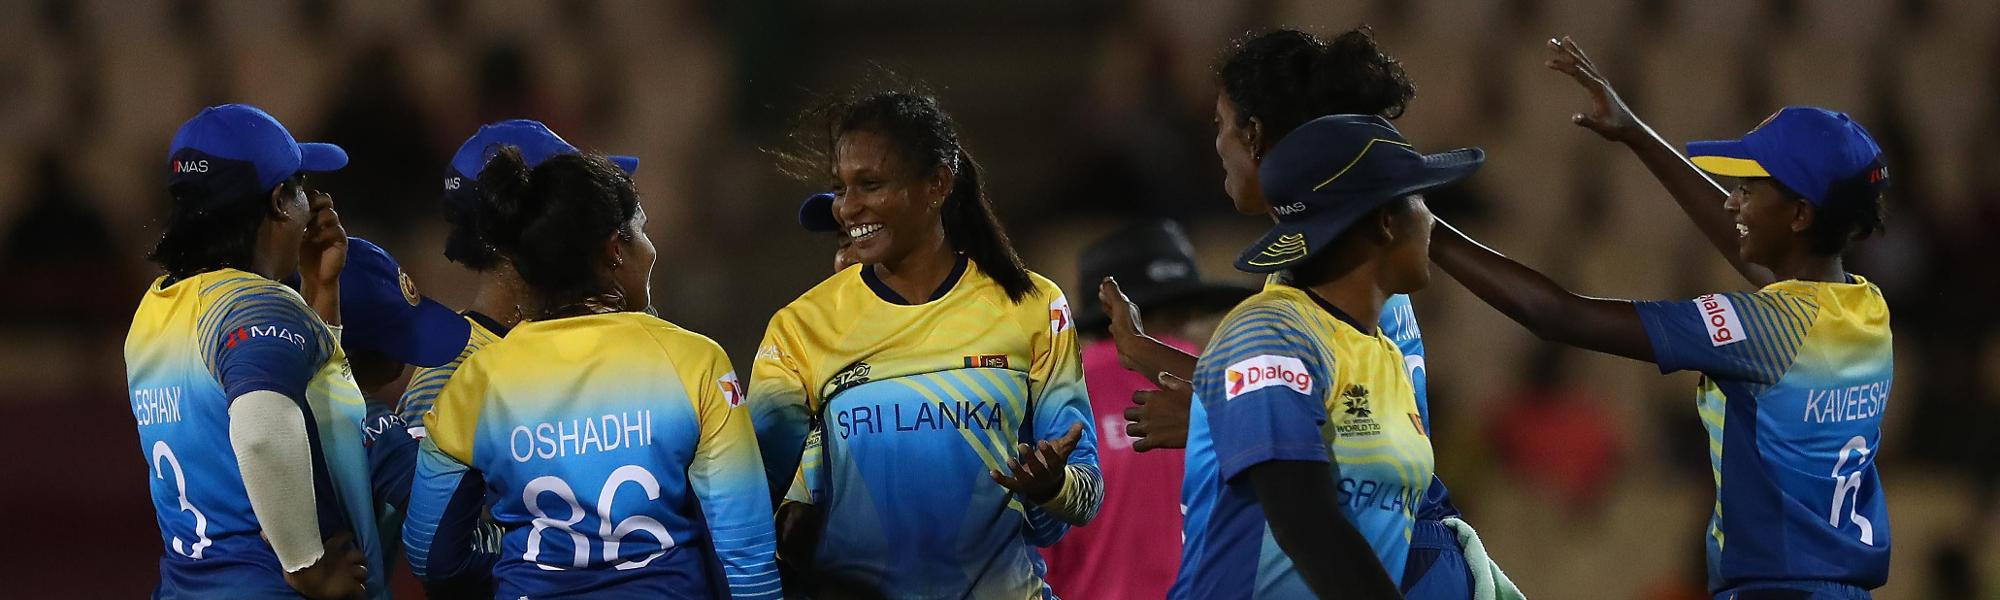 Inoshi Priyadharshani of Sri Lanka celebrates bowling Shamima Sultana of Bangladesh during the ICC Women's World T20 2018 match between Sri Lanka and Bangladesh at Darren Sammy Cricket Ground on November 14, 2018 in Gros Islet, Saint Lucia.